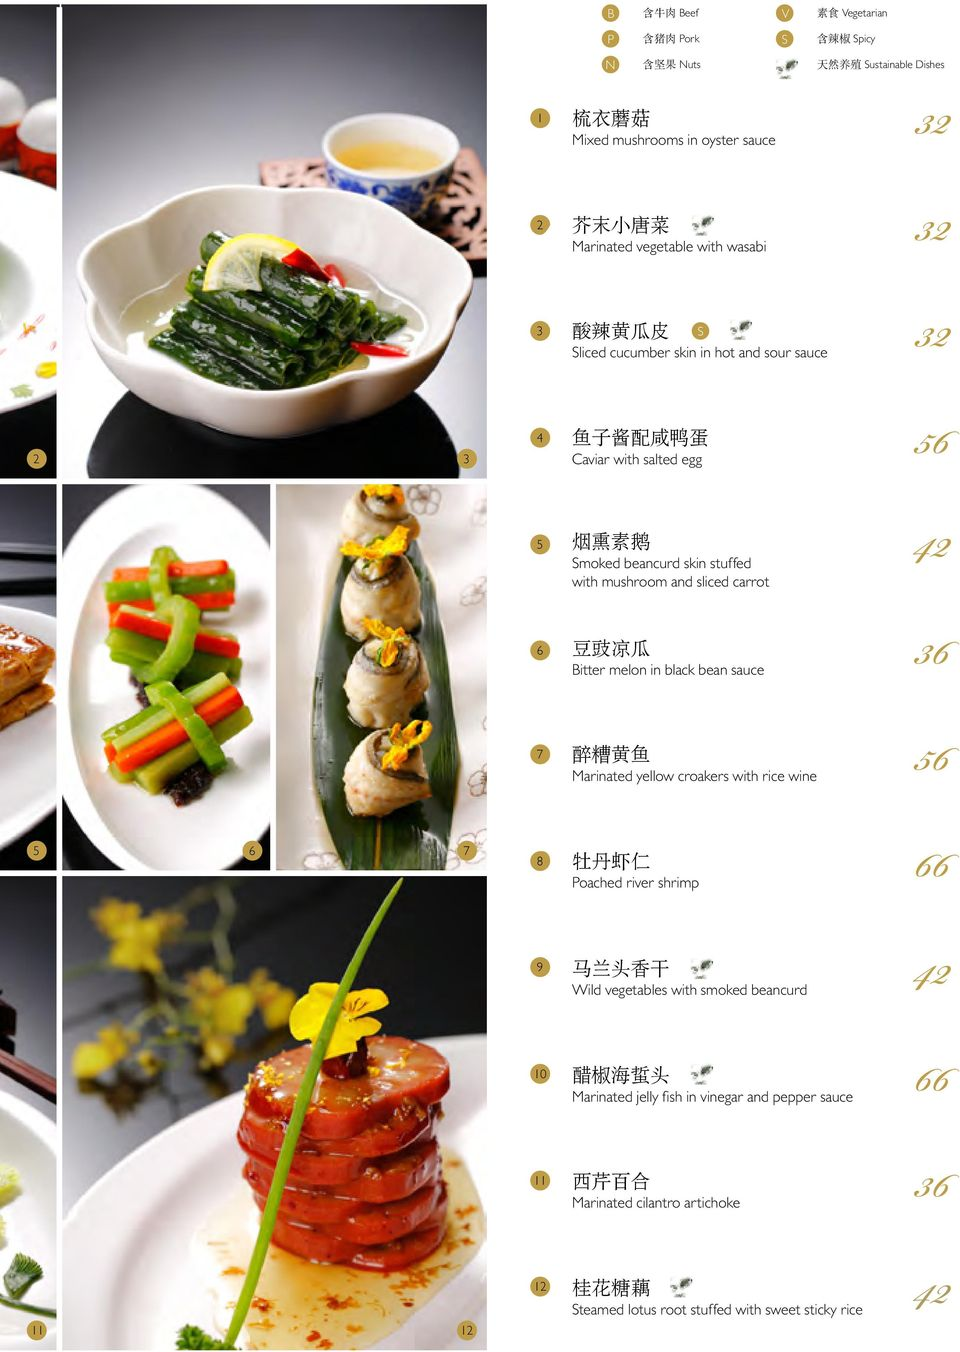 42 6 7 36 豆 豉 凉 瓜 Bitter melon in black bean sauce 56 醉 糟 黄 鱼 Marinated yellow croakers with rice wine 5 6 7 8 66 牡 丹 虾 仁 oached river shrimp 11 12 9 10 11 12 42 马 兰 头 香 干 Wild